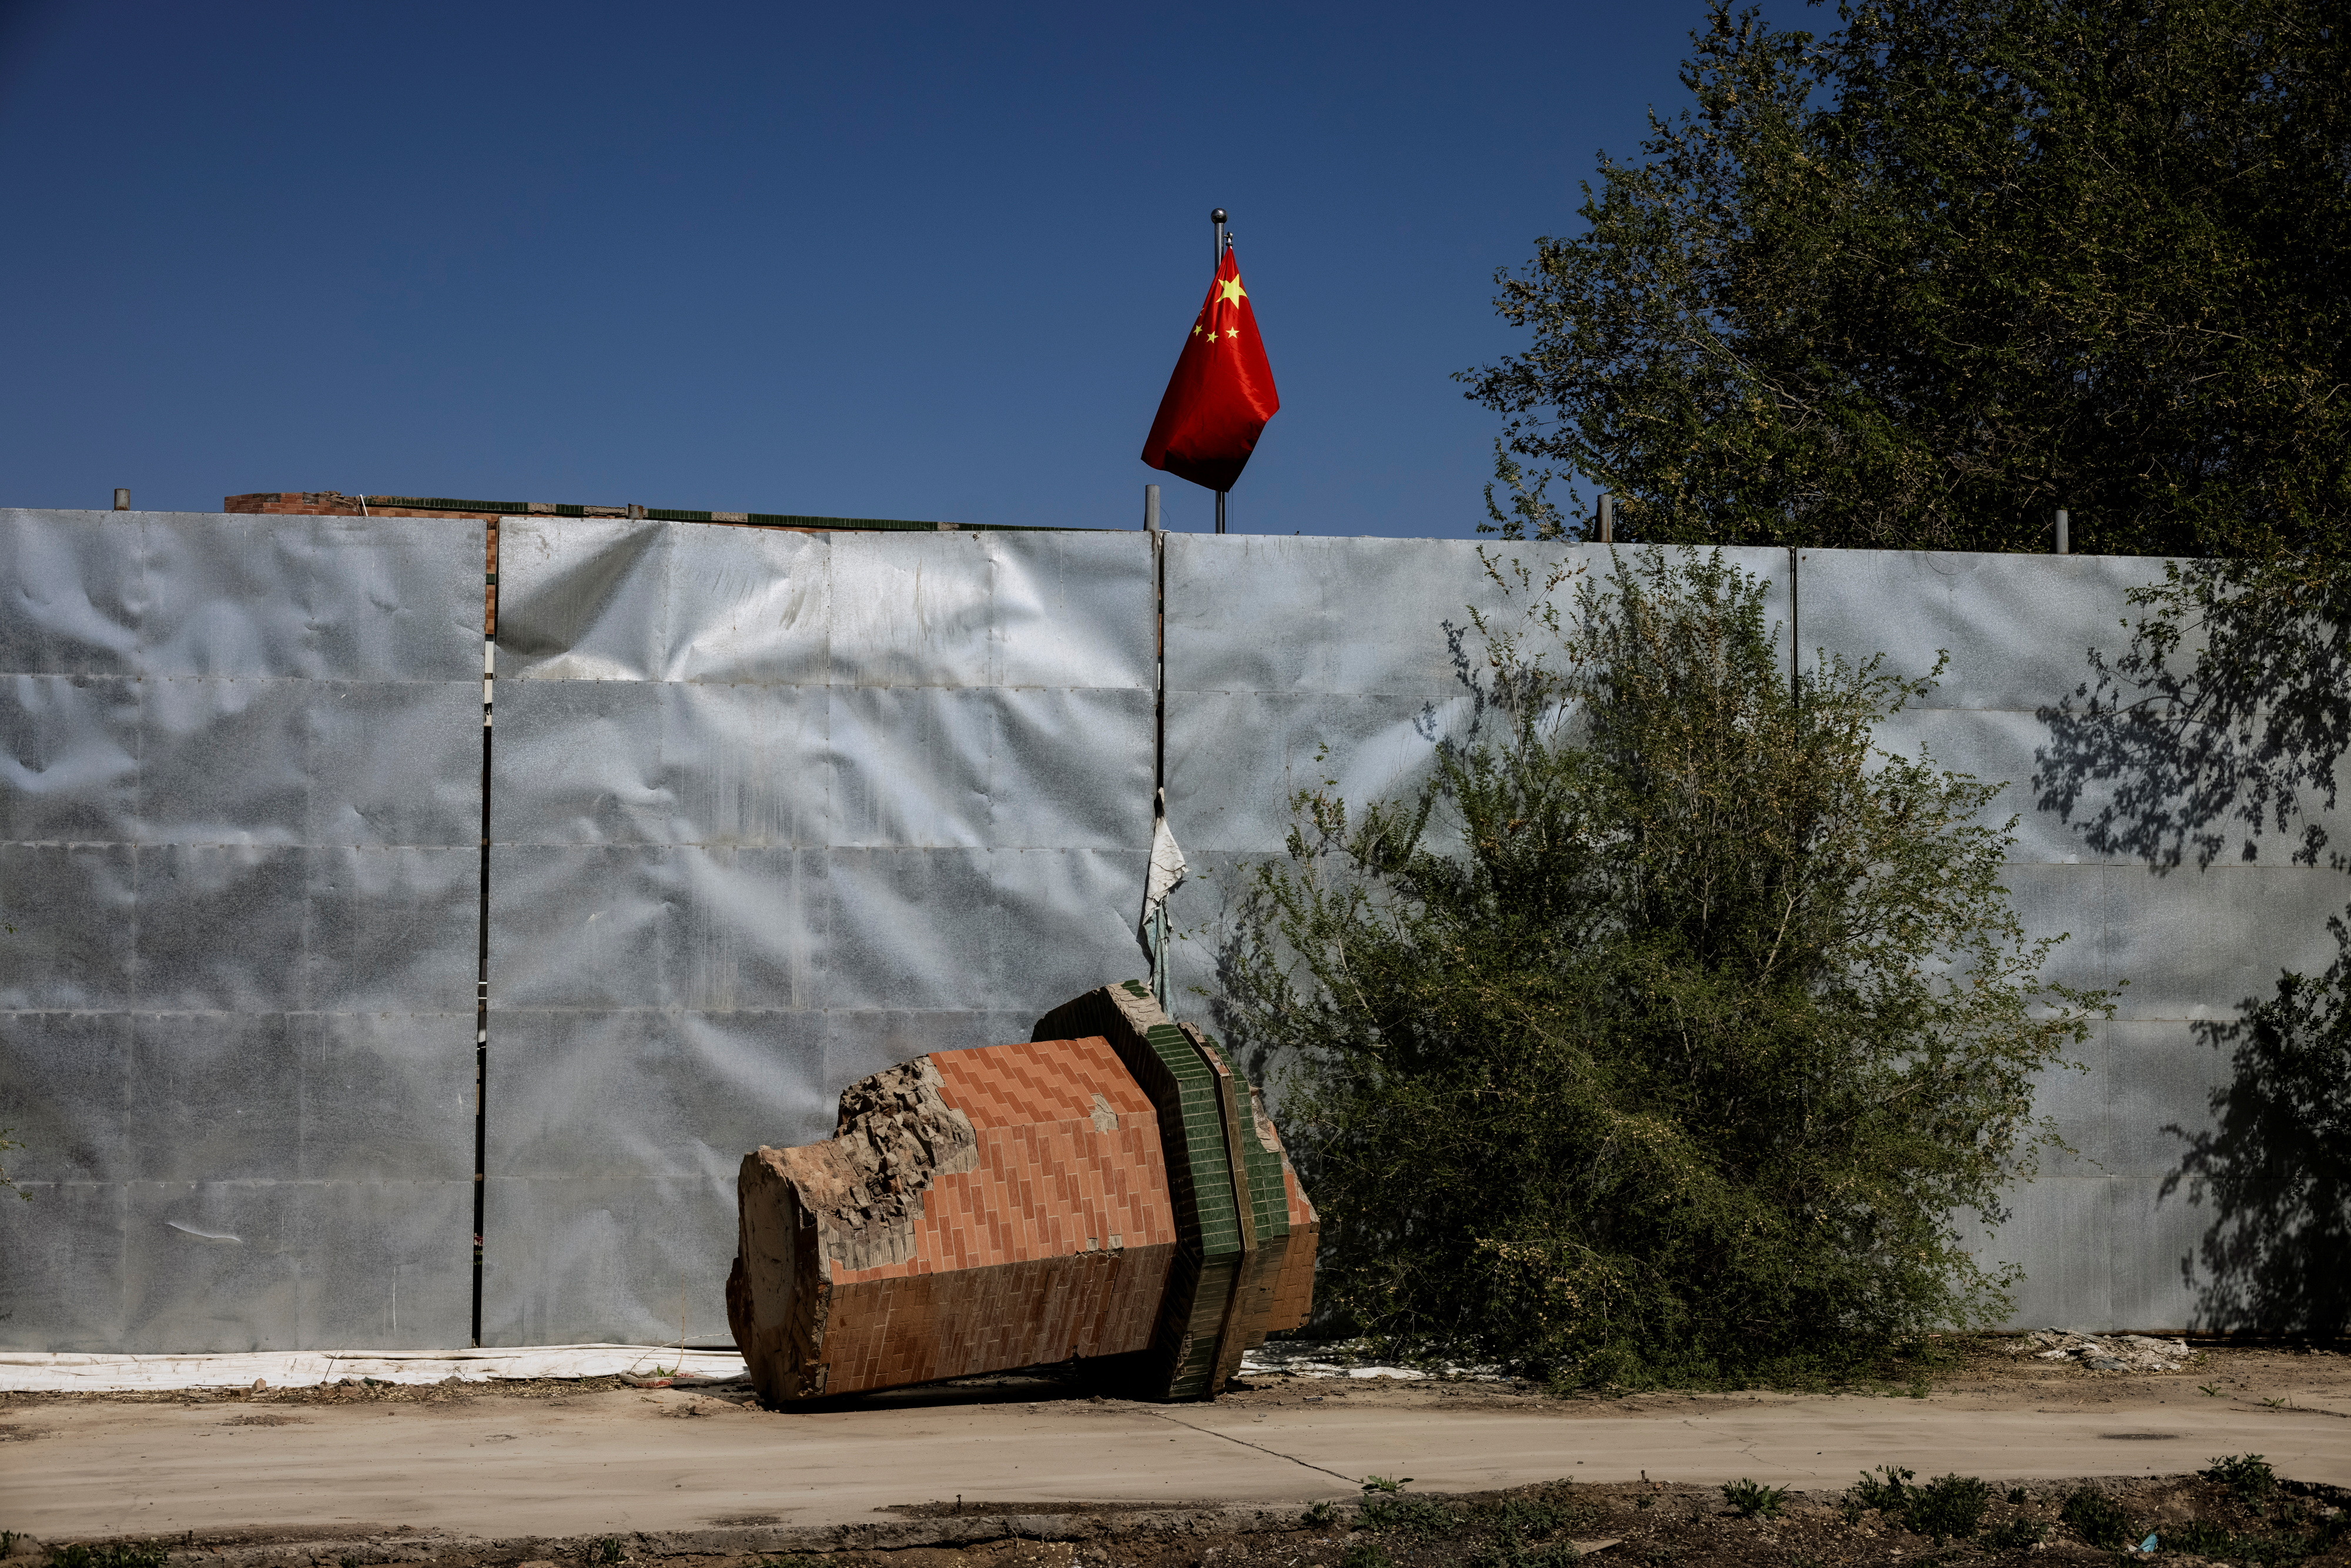 A part of a minaret broken off from the former Xinqu Mosque lies near a Chinese national flag in a yard adjacent to the former house of worship in Changji outside Urumqi, Xinjiang Uyghur Autonomous Region, China, May 6, 2021. Picture taken May 6, 2021.  REUTERS/Thomas Peter